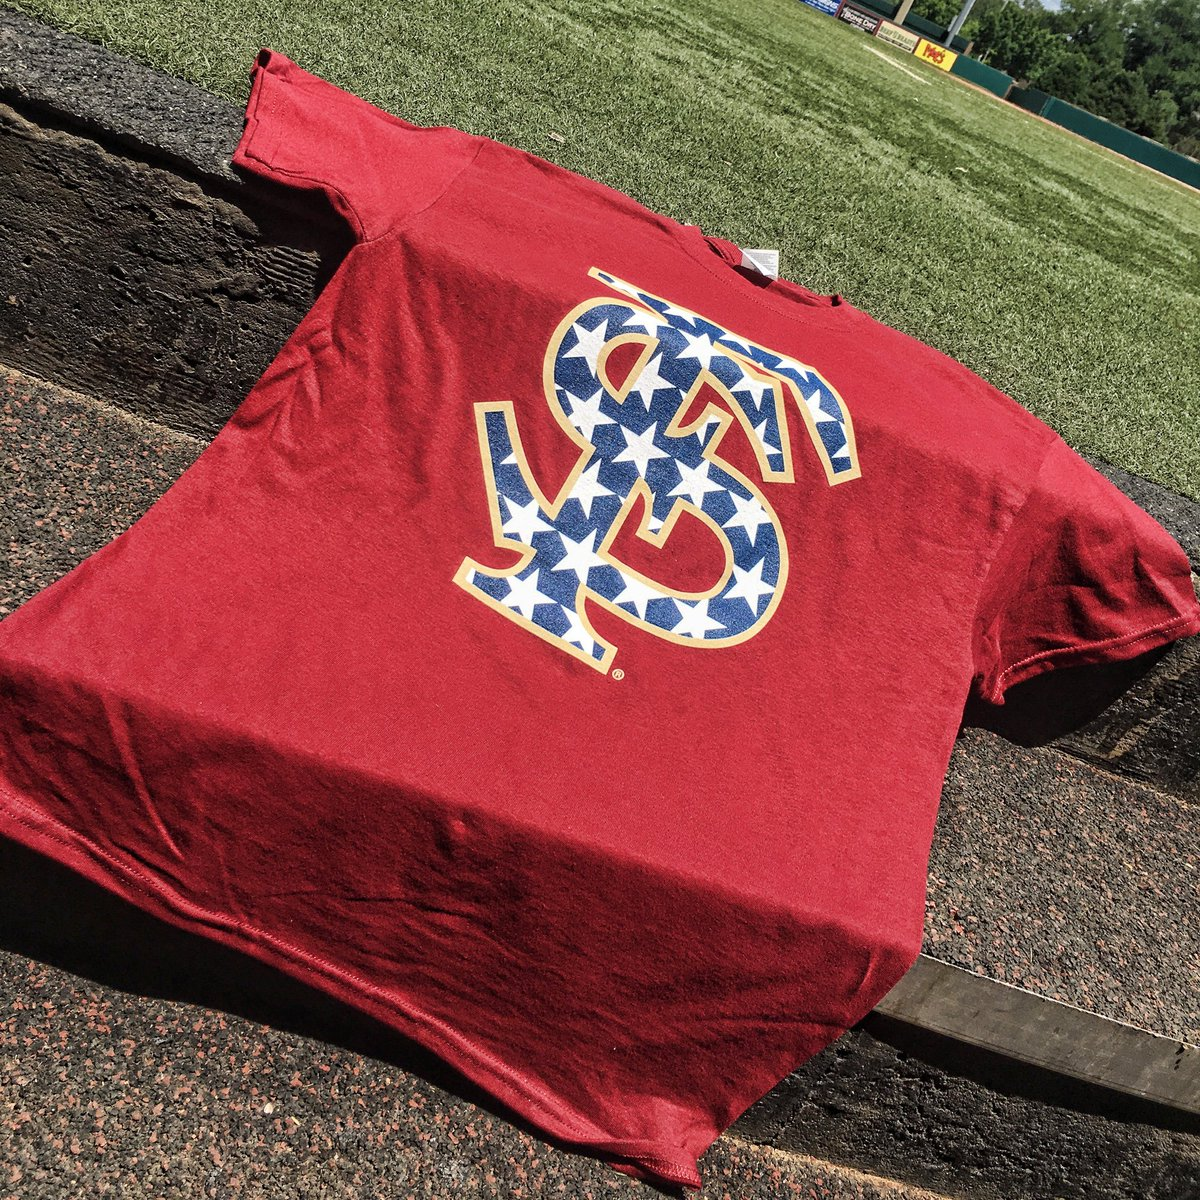 Want to win some patriotic gear before July 4th?!  Retweet for a chance to win one of these #NoleBaseball t-shirts! https://t.co/Vn4IxKqwTp